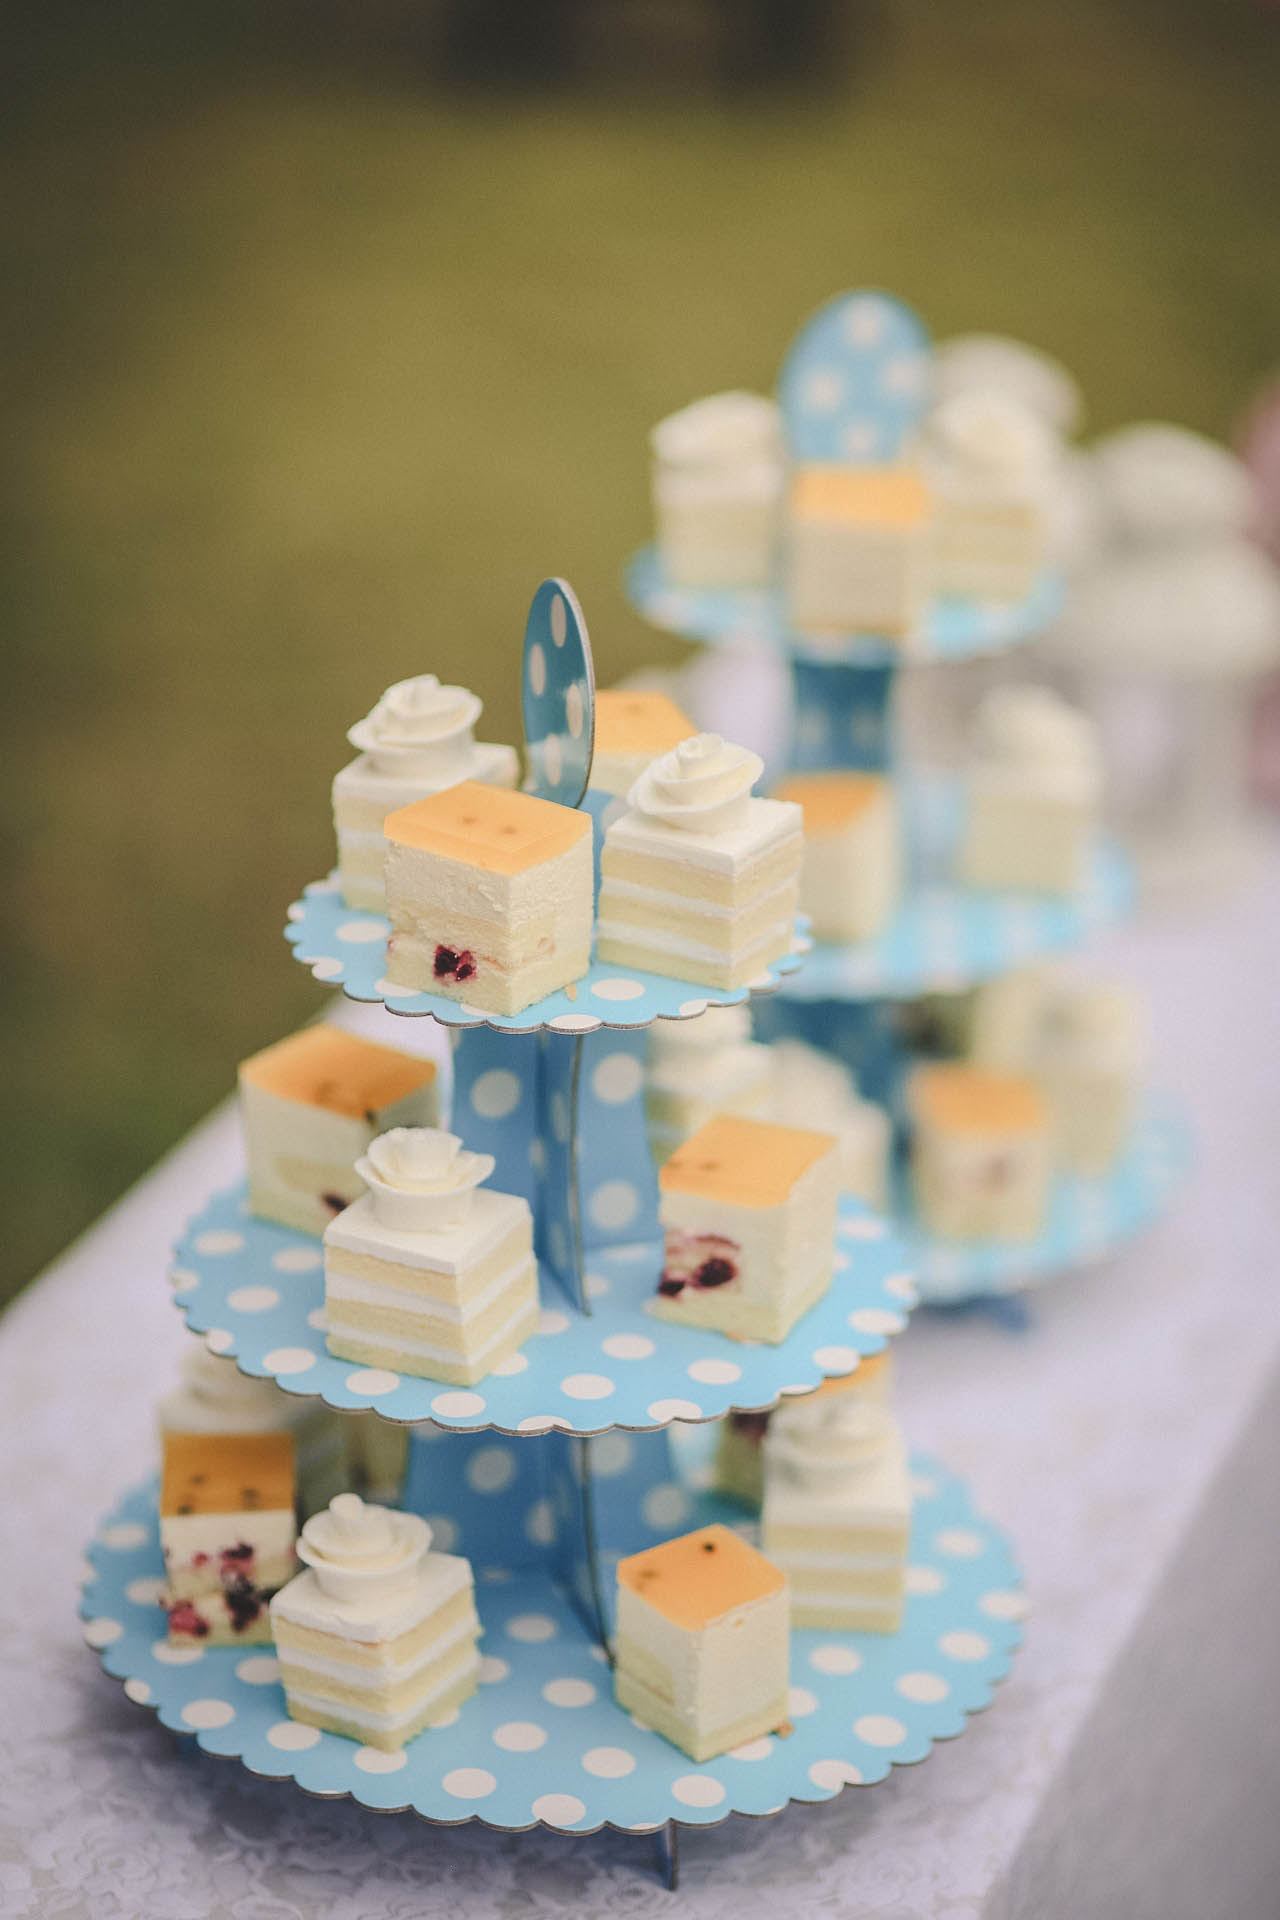 Baptism cake barin multivenues bartism reception halls - 29